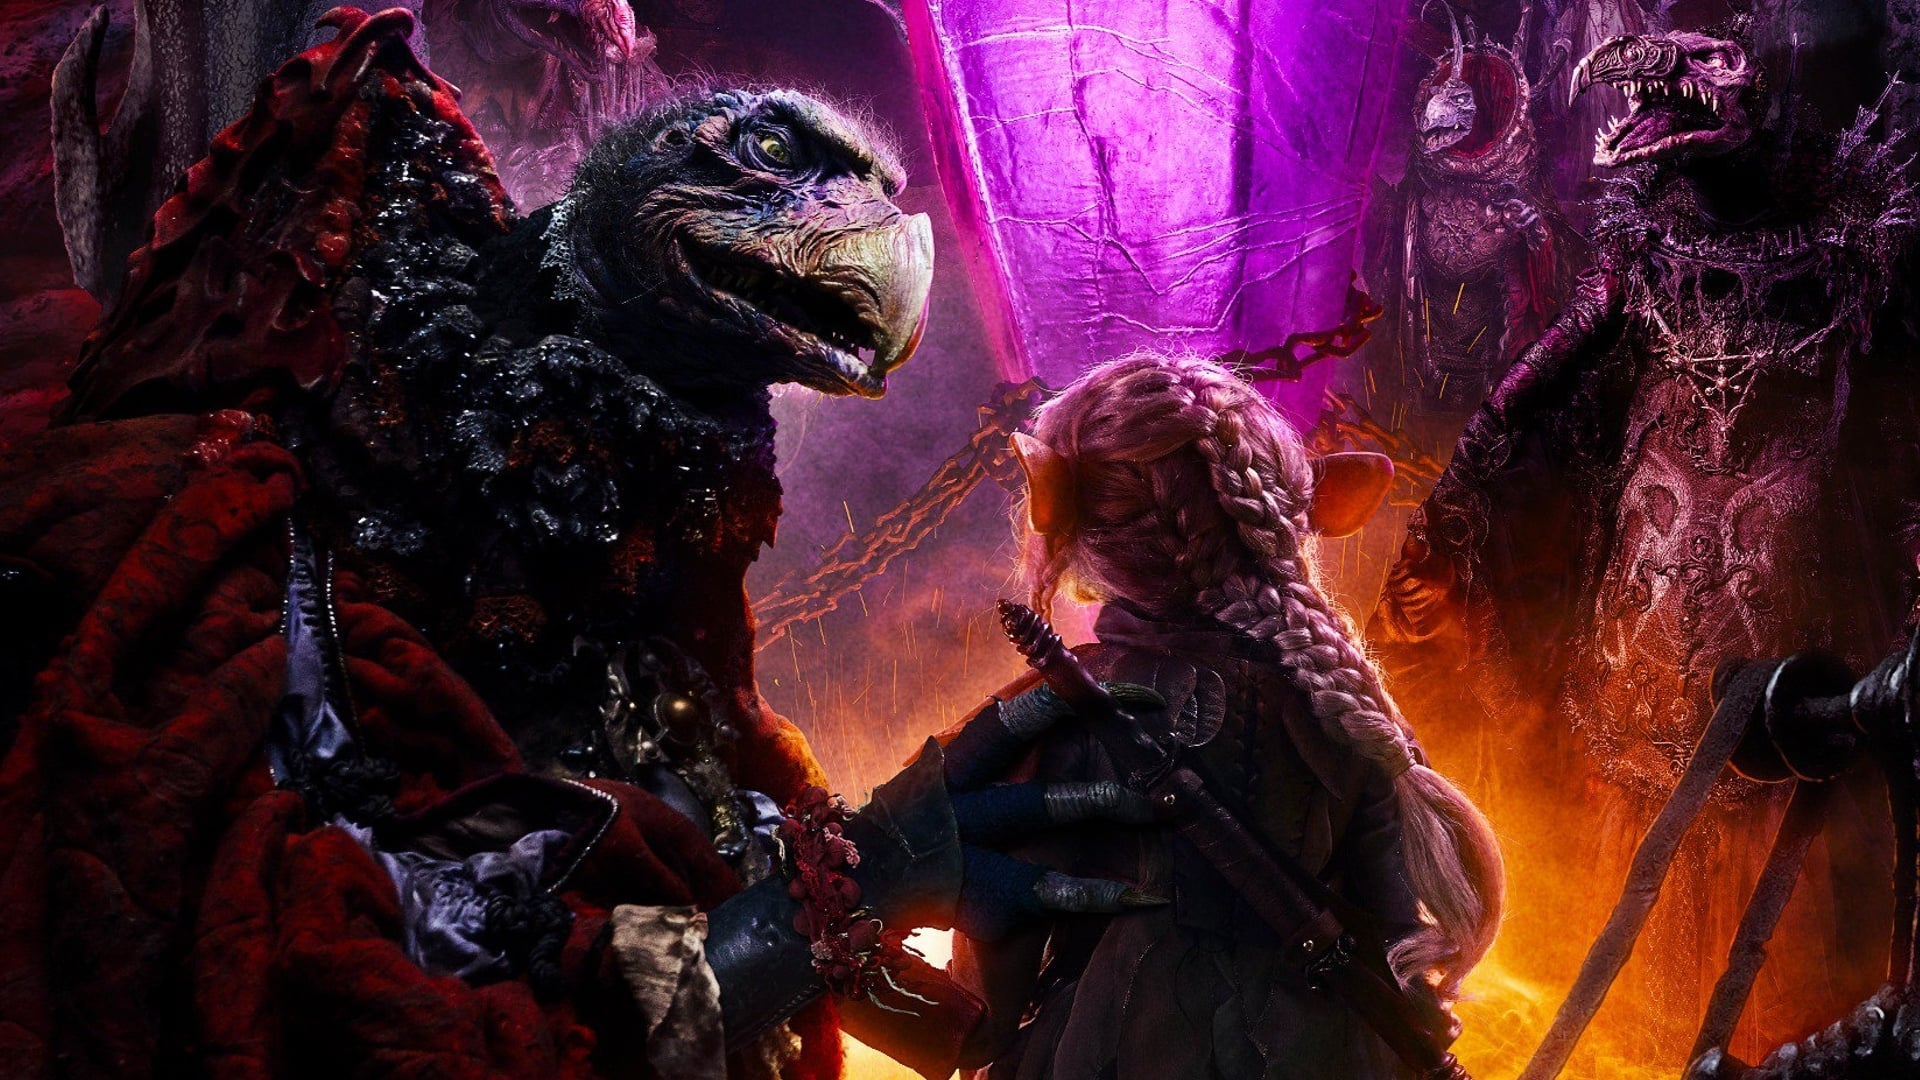 When the Crystal of Truth is damaged, corrupted by the evil Skeksis, and a sickness spreads across the land, three Gelflings uncover the horrific truth behind the power of the Skeksis and an adventure unfolds as the fires of rebellion are lit and an epic battle for the planet begins.